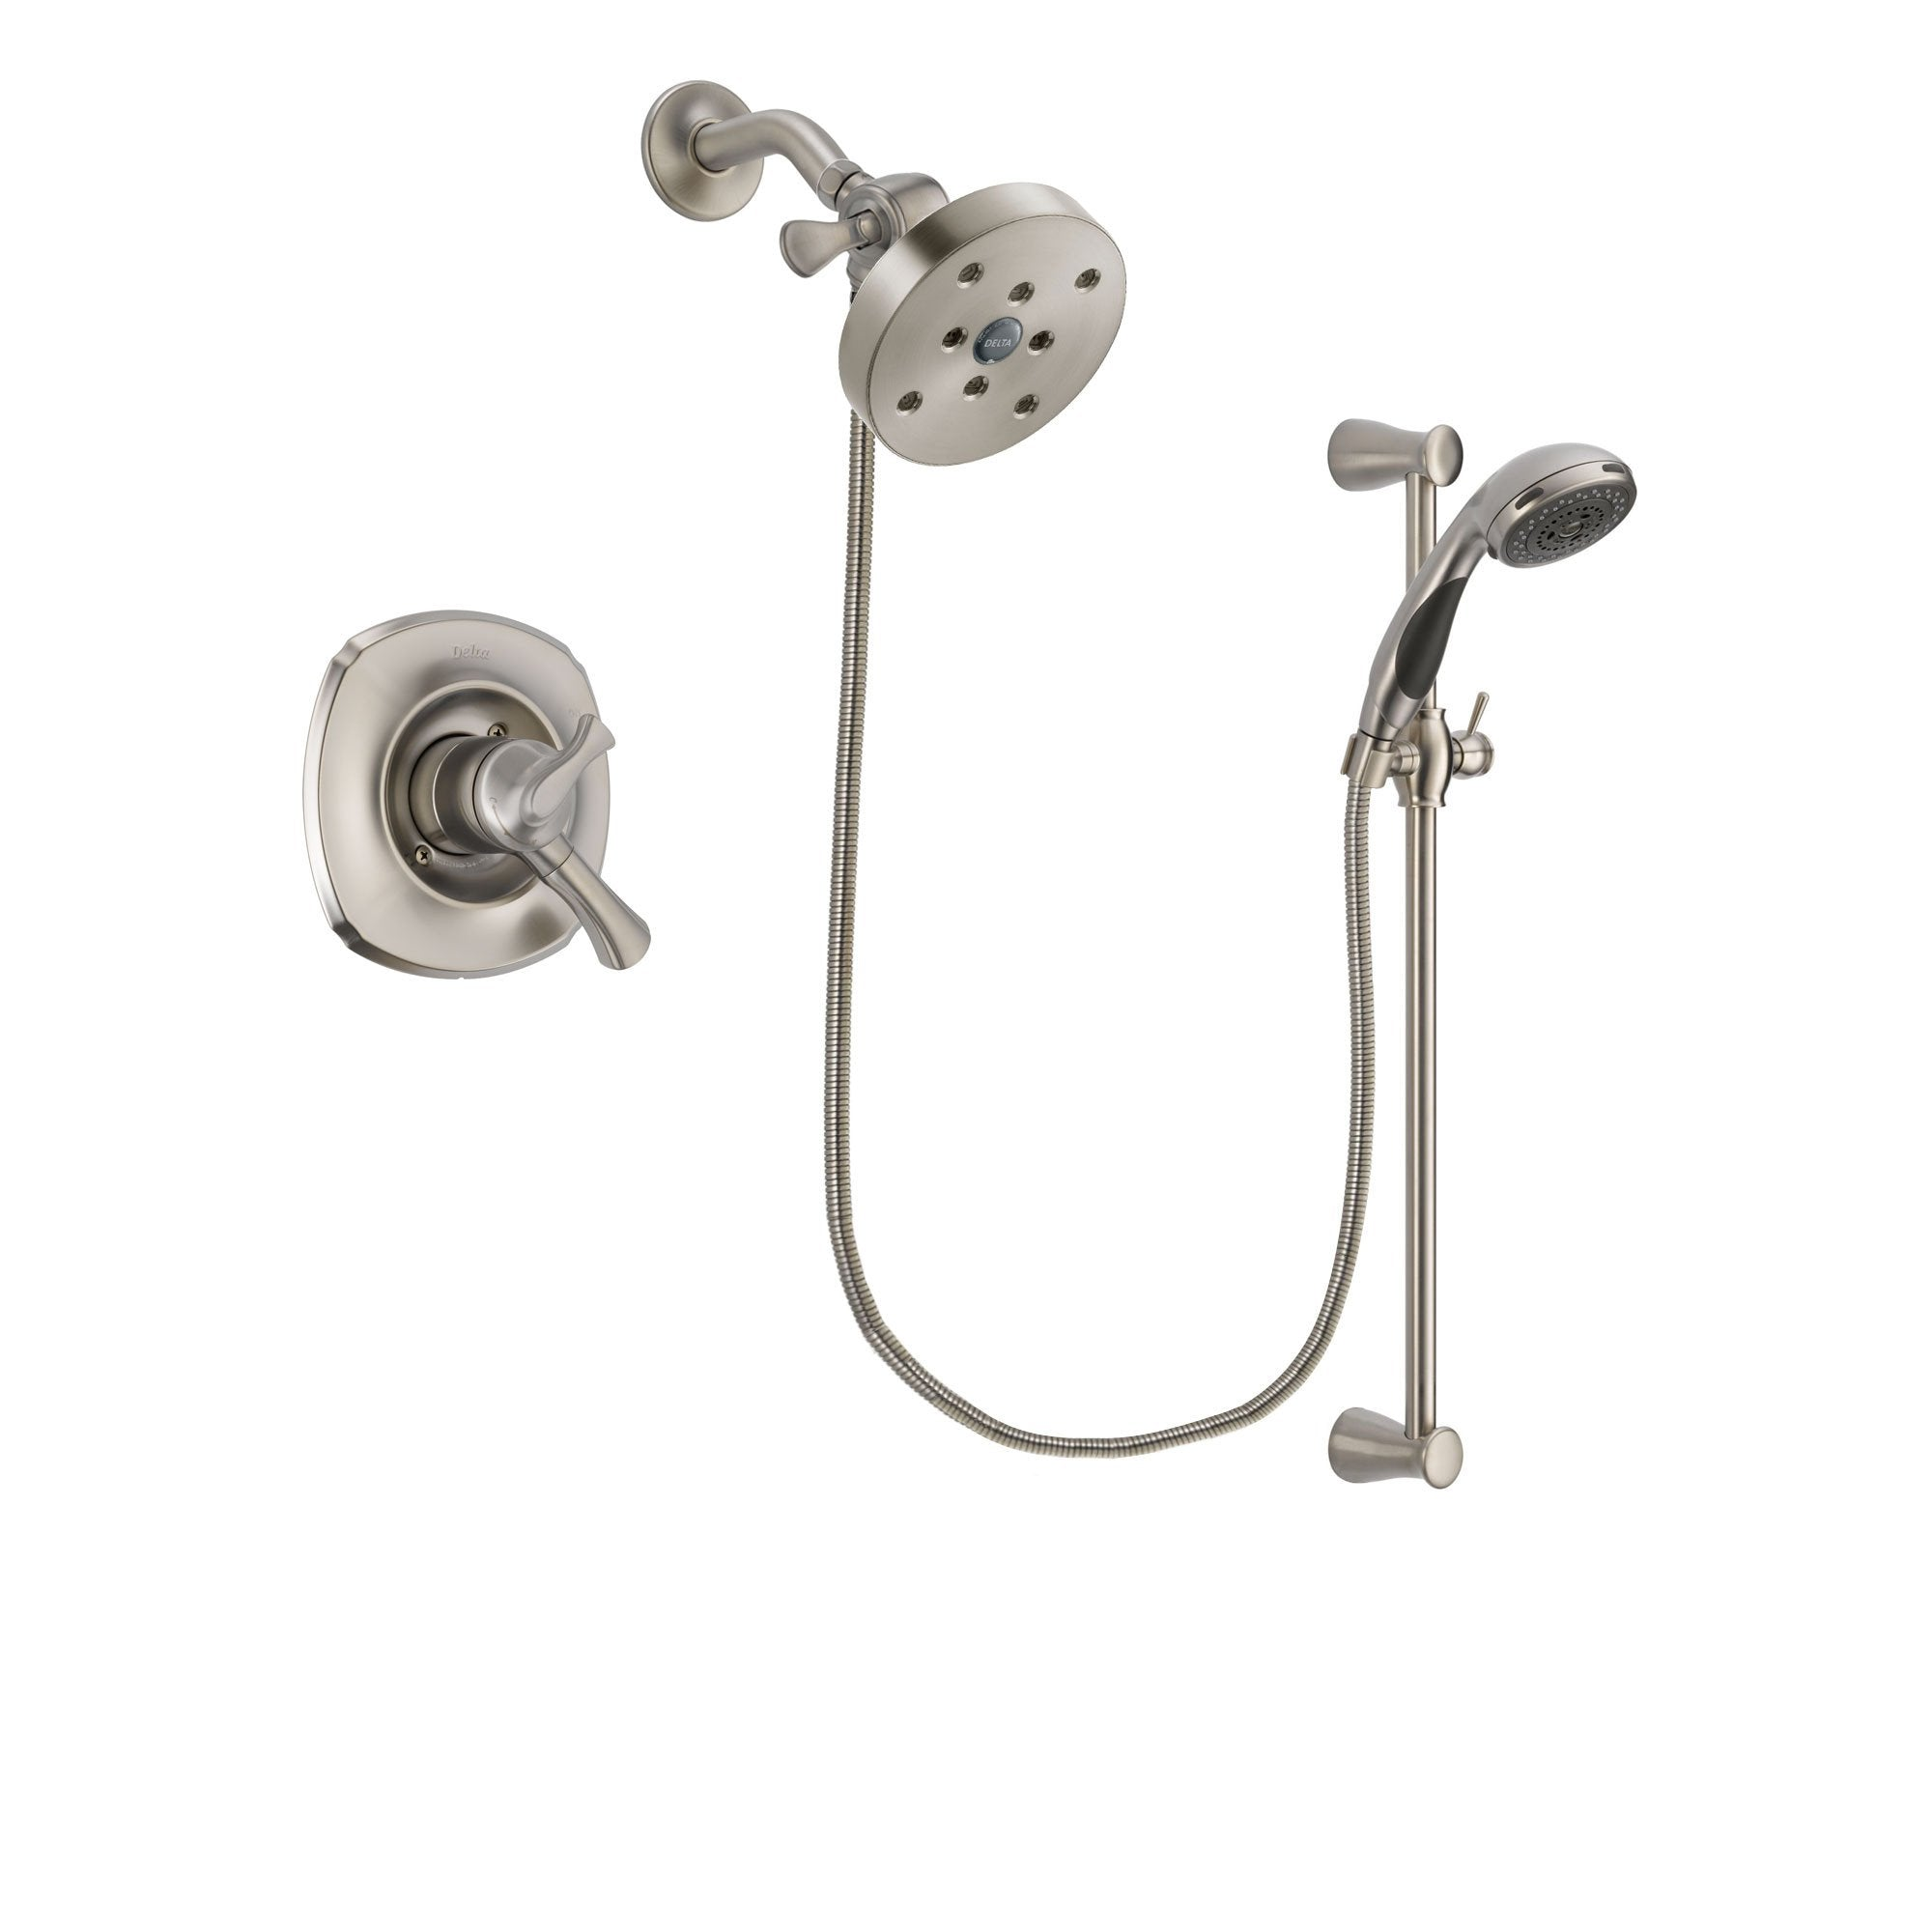 Delta Addison Stainless Steel Finish Shower Faucet System w/Hand Shower DSP1644V